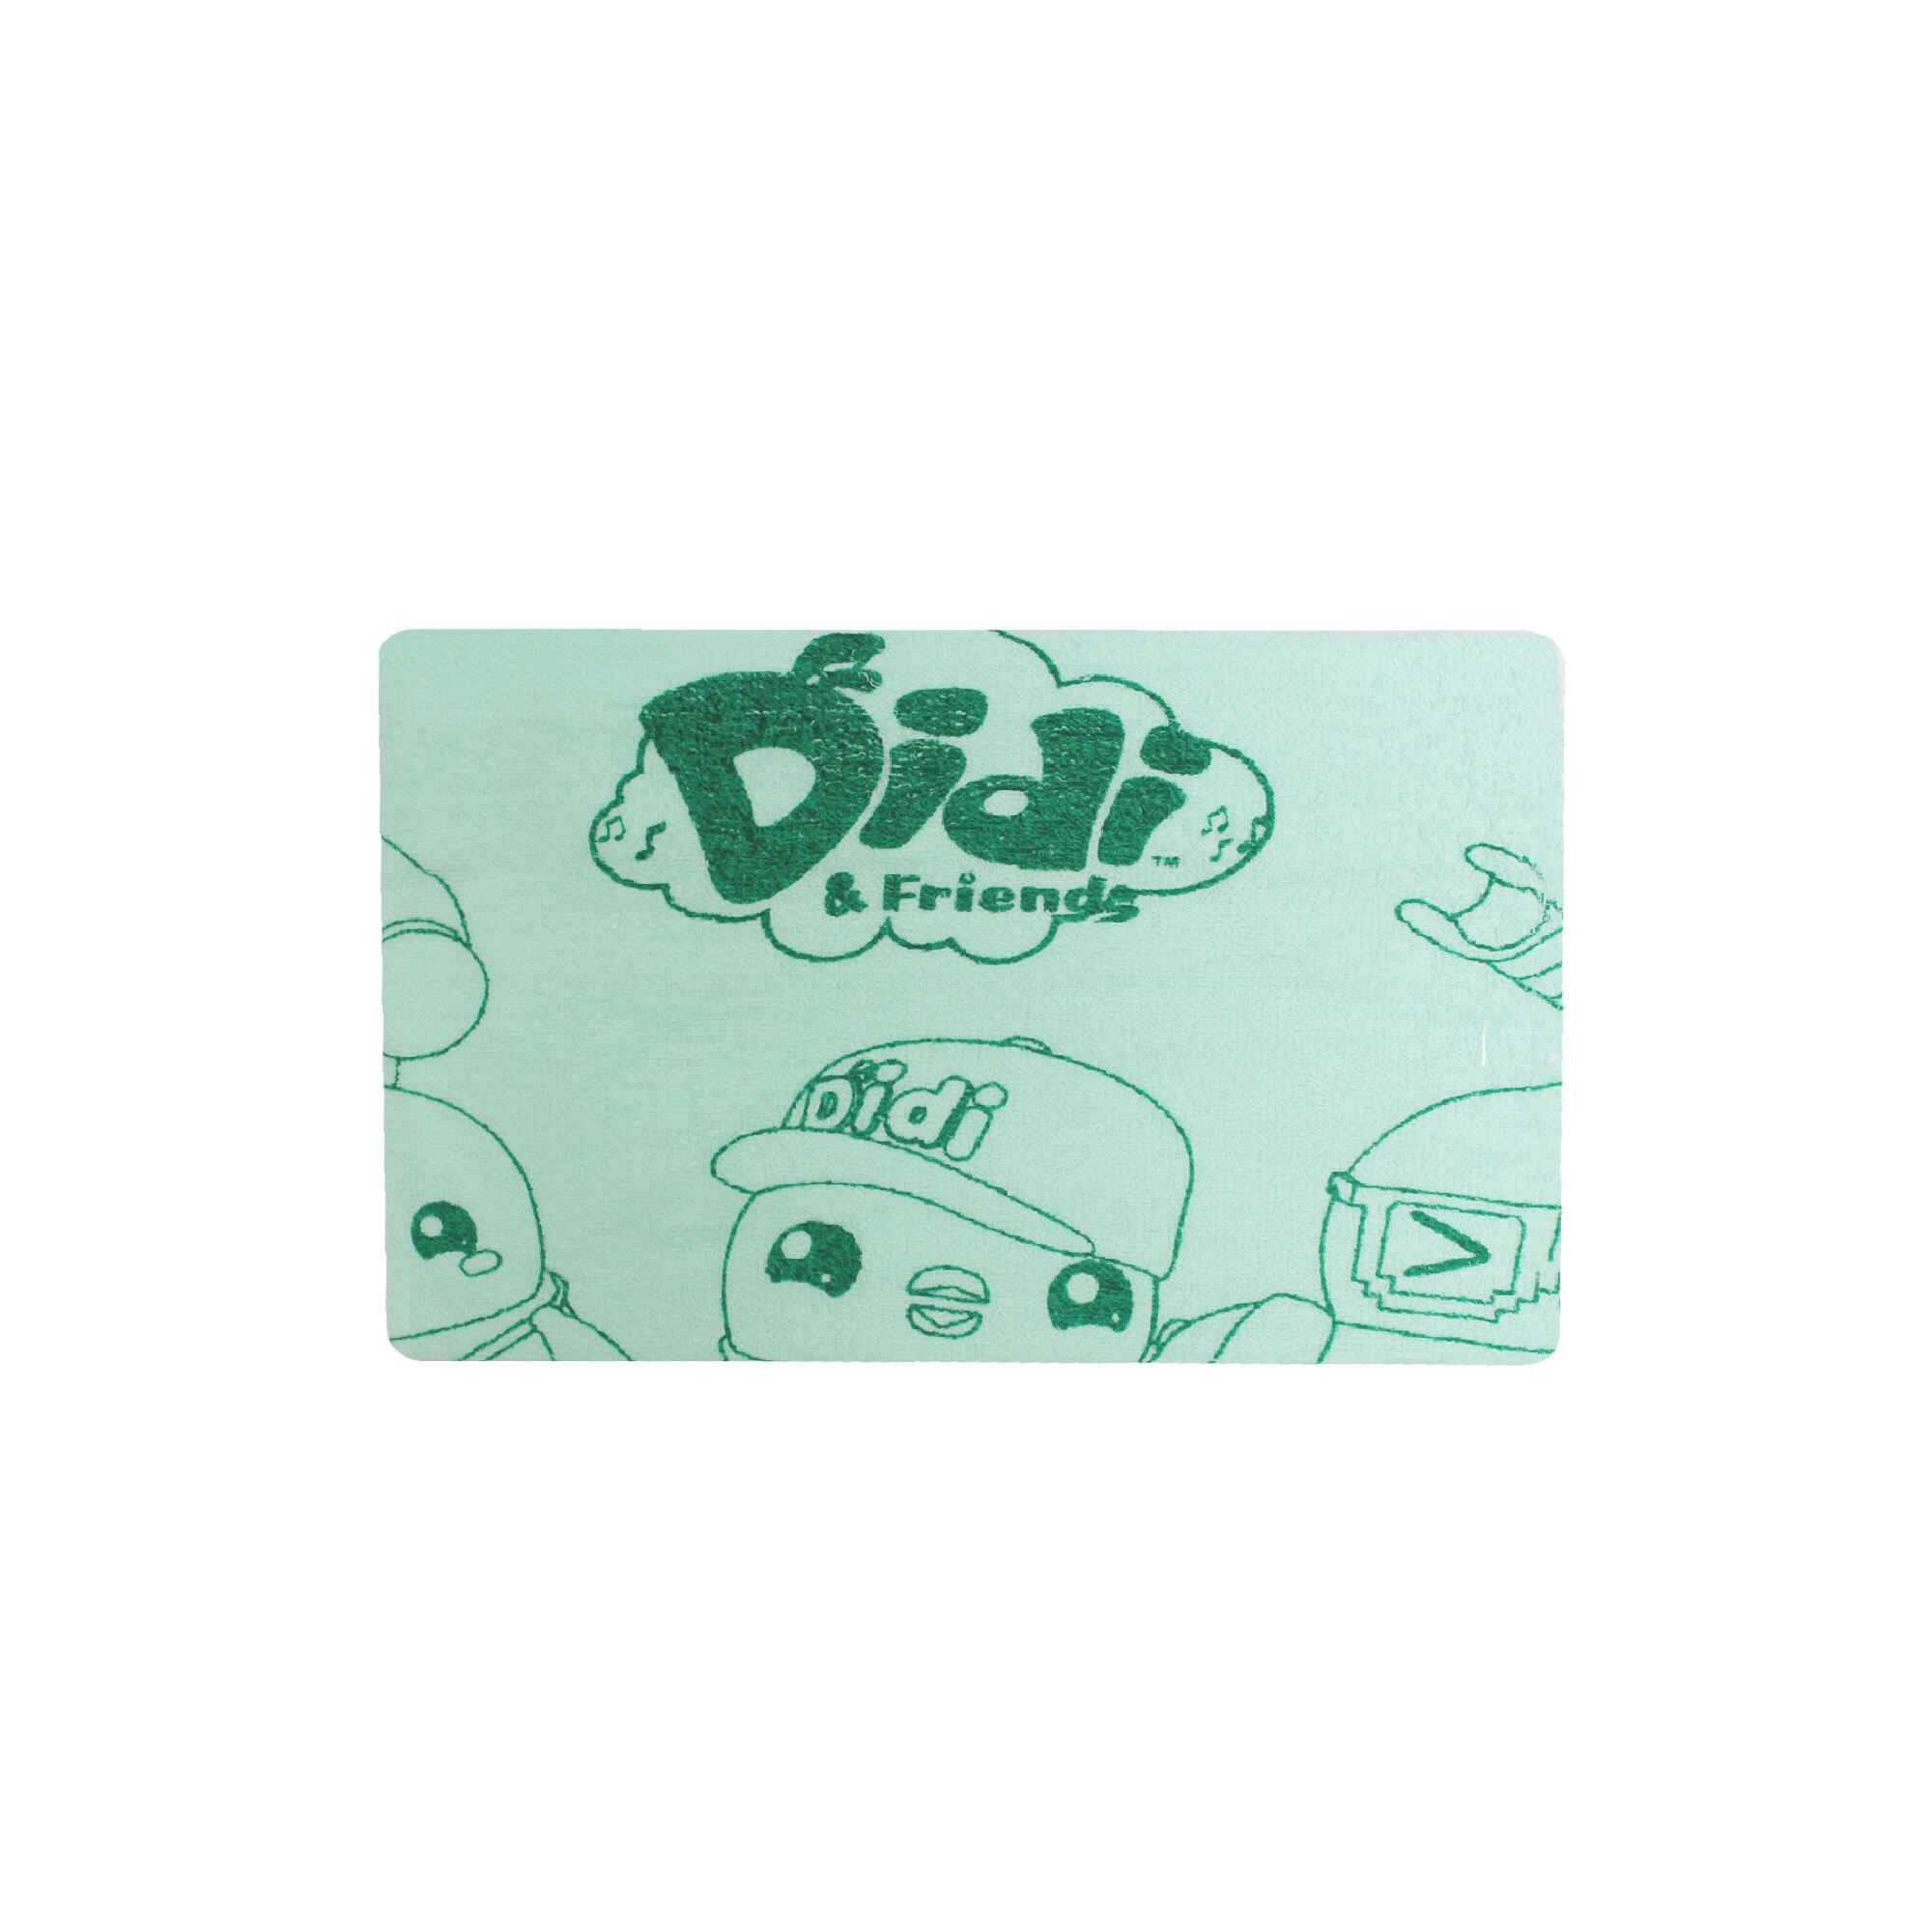 Didi & Friends 2 In 1 Baby Bath Towel- Green Colour